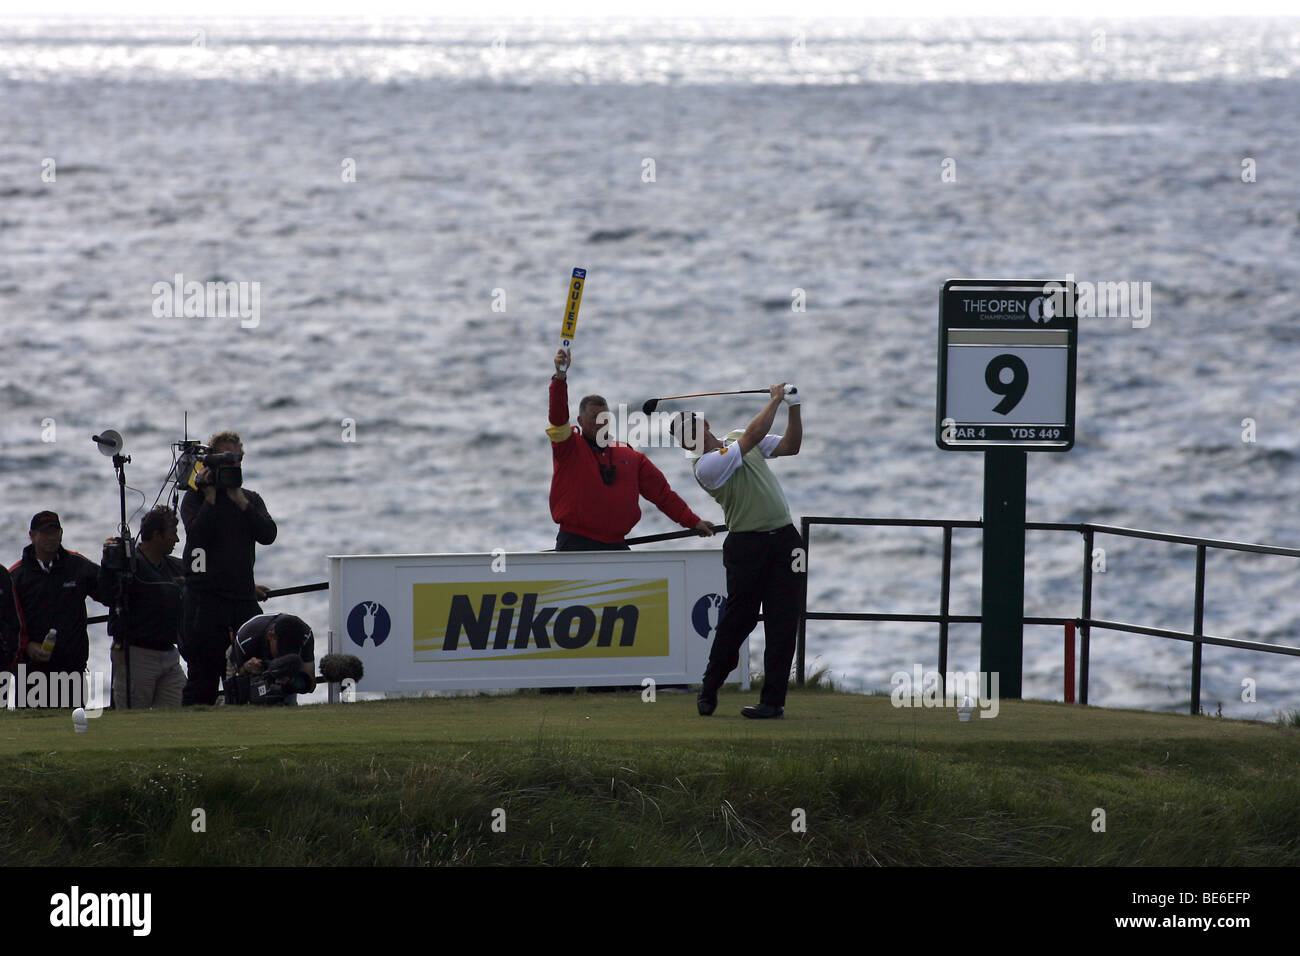 LEE WESTWOOD DRIVES THE 9TH THE OPEN TURNBERRY 2009 TURNBERRY AYRSHIRE SCOTLAND 19 July 2009 - Stock Image